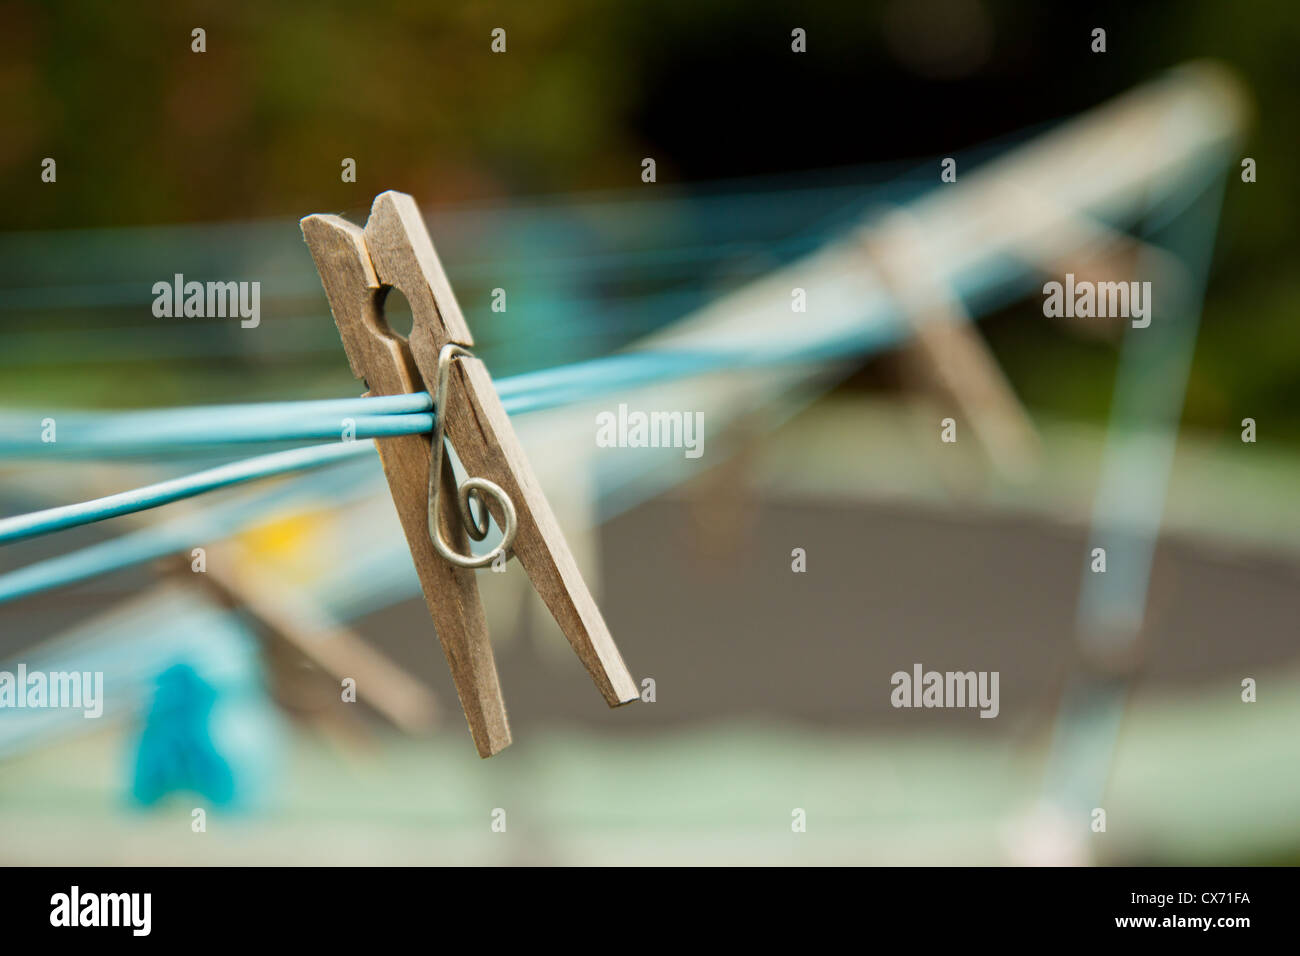 Wooden clothes peg on a blue washing line - Stock Image